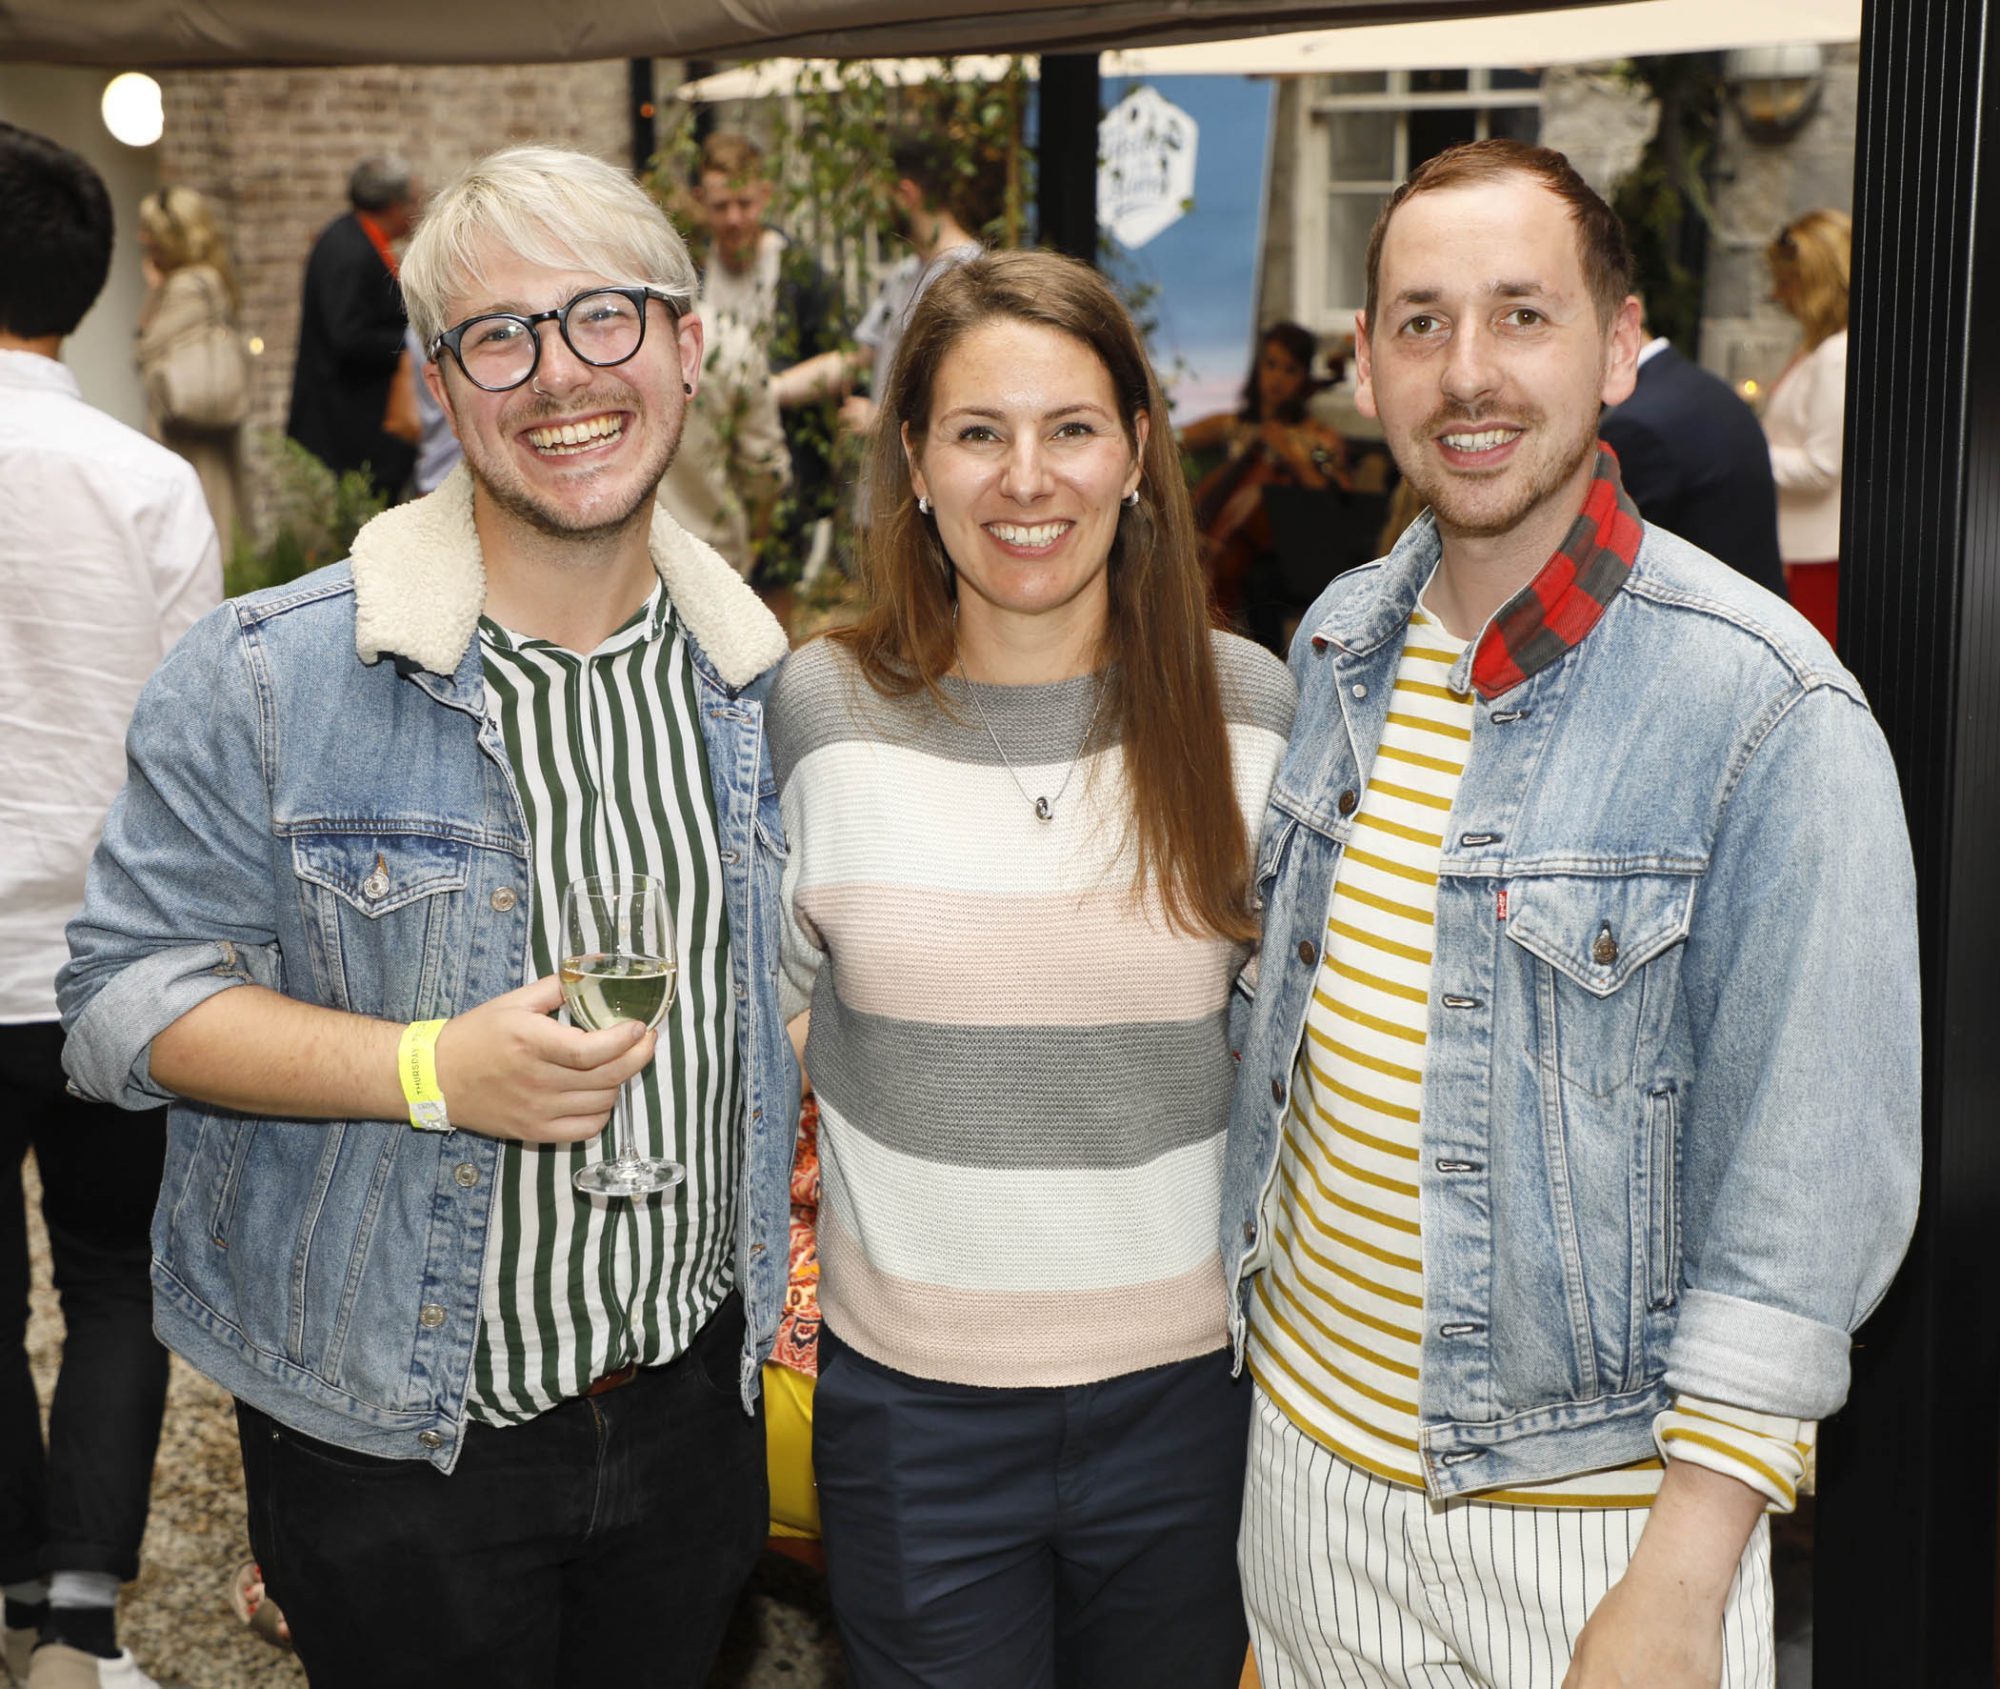 Russell Alford, Eva Burg and Patrick Hanlon at the launch of Taste the Island, a 12 week celebration of Ireland's seasonal ingredients, adventurous tastes and bold experiences taking place this September, October and November. Photo: Kieran Harnett